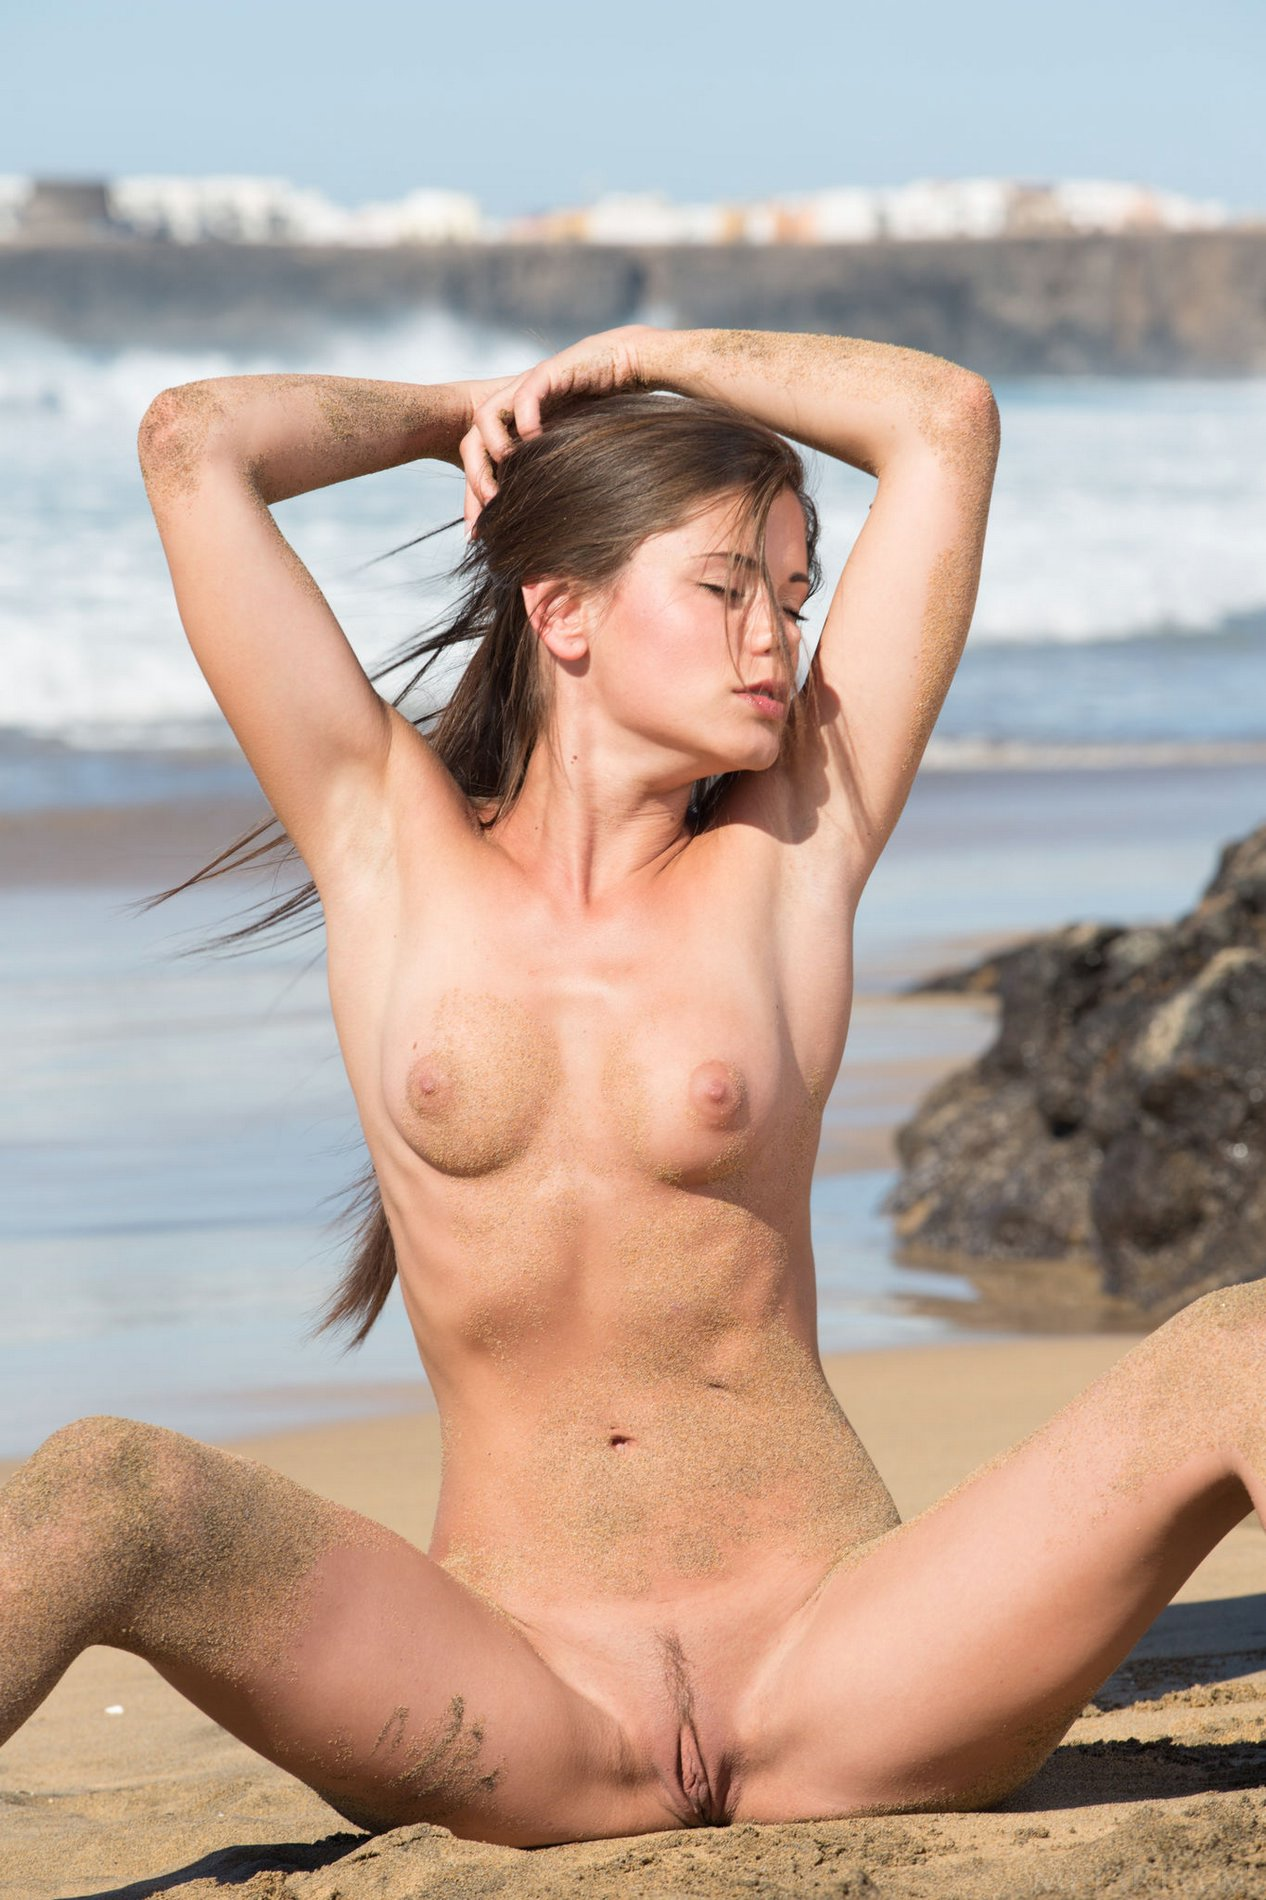 Little Caprice exposes her hot body on the beach - My ...